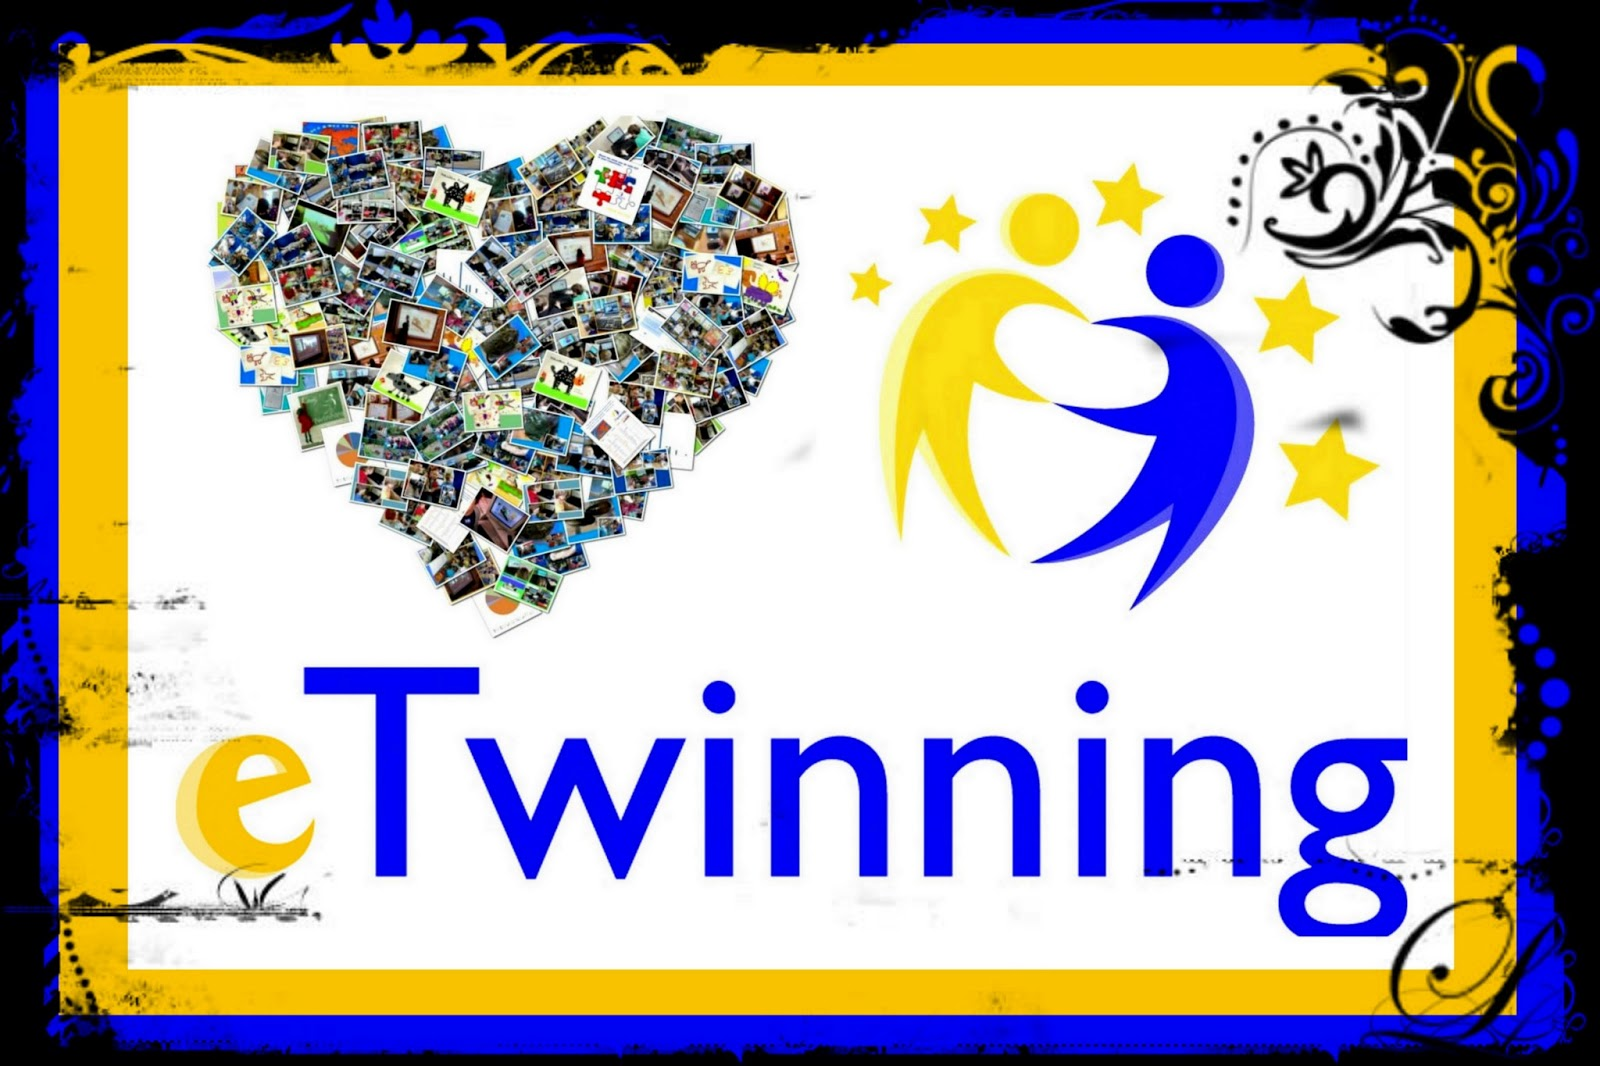 WE ARE E-TWINNING CENTRE